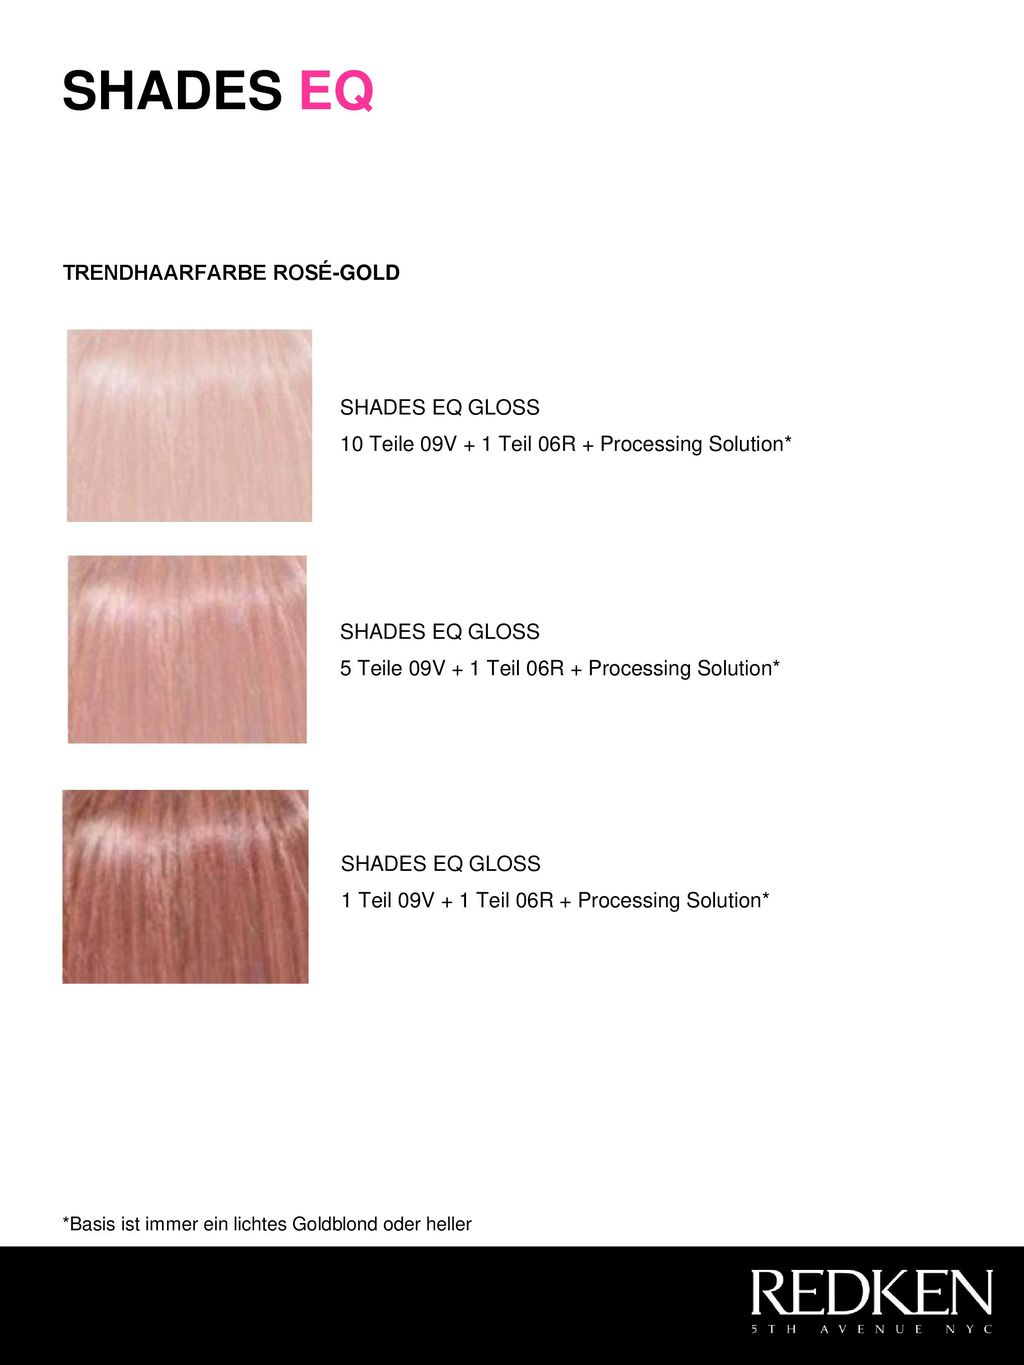 SHADES EQ TRENDHAARFARBE ROSÉ-GOLD SHADES EQ GLOSS